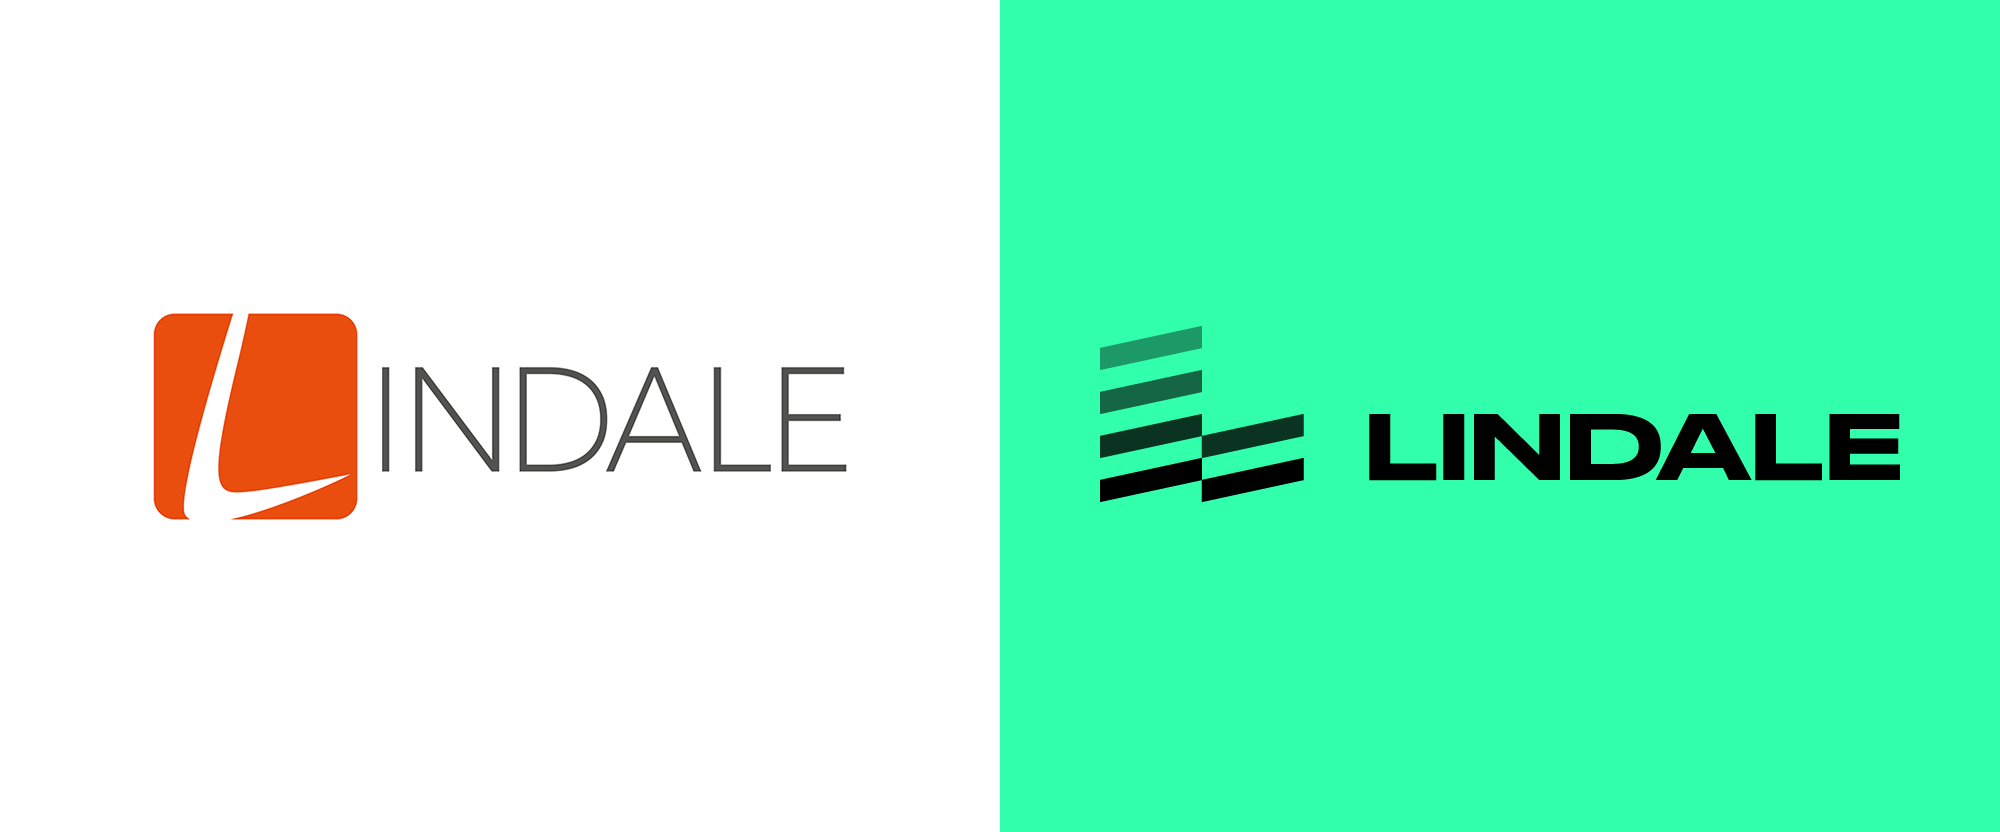 New Logo and Identity for Lindale by Jack Magma